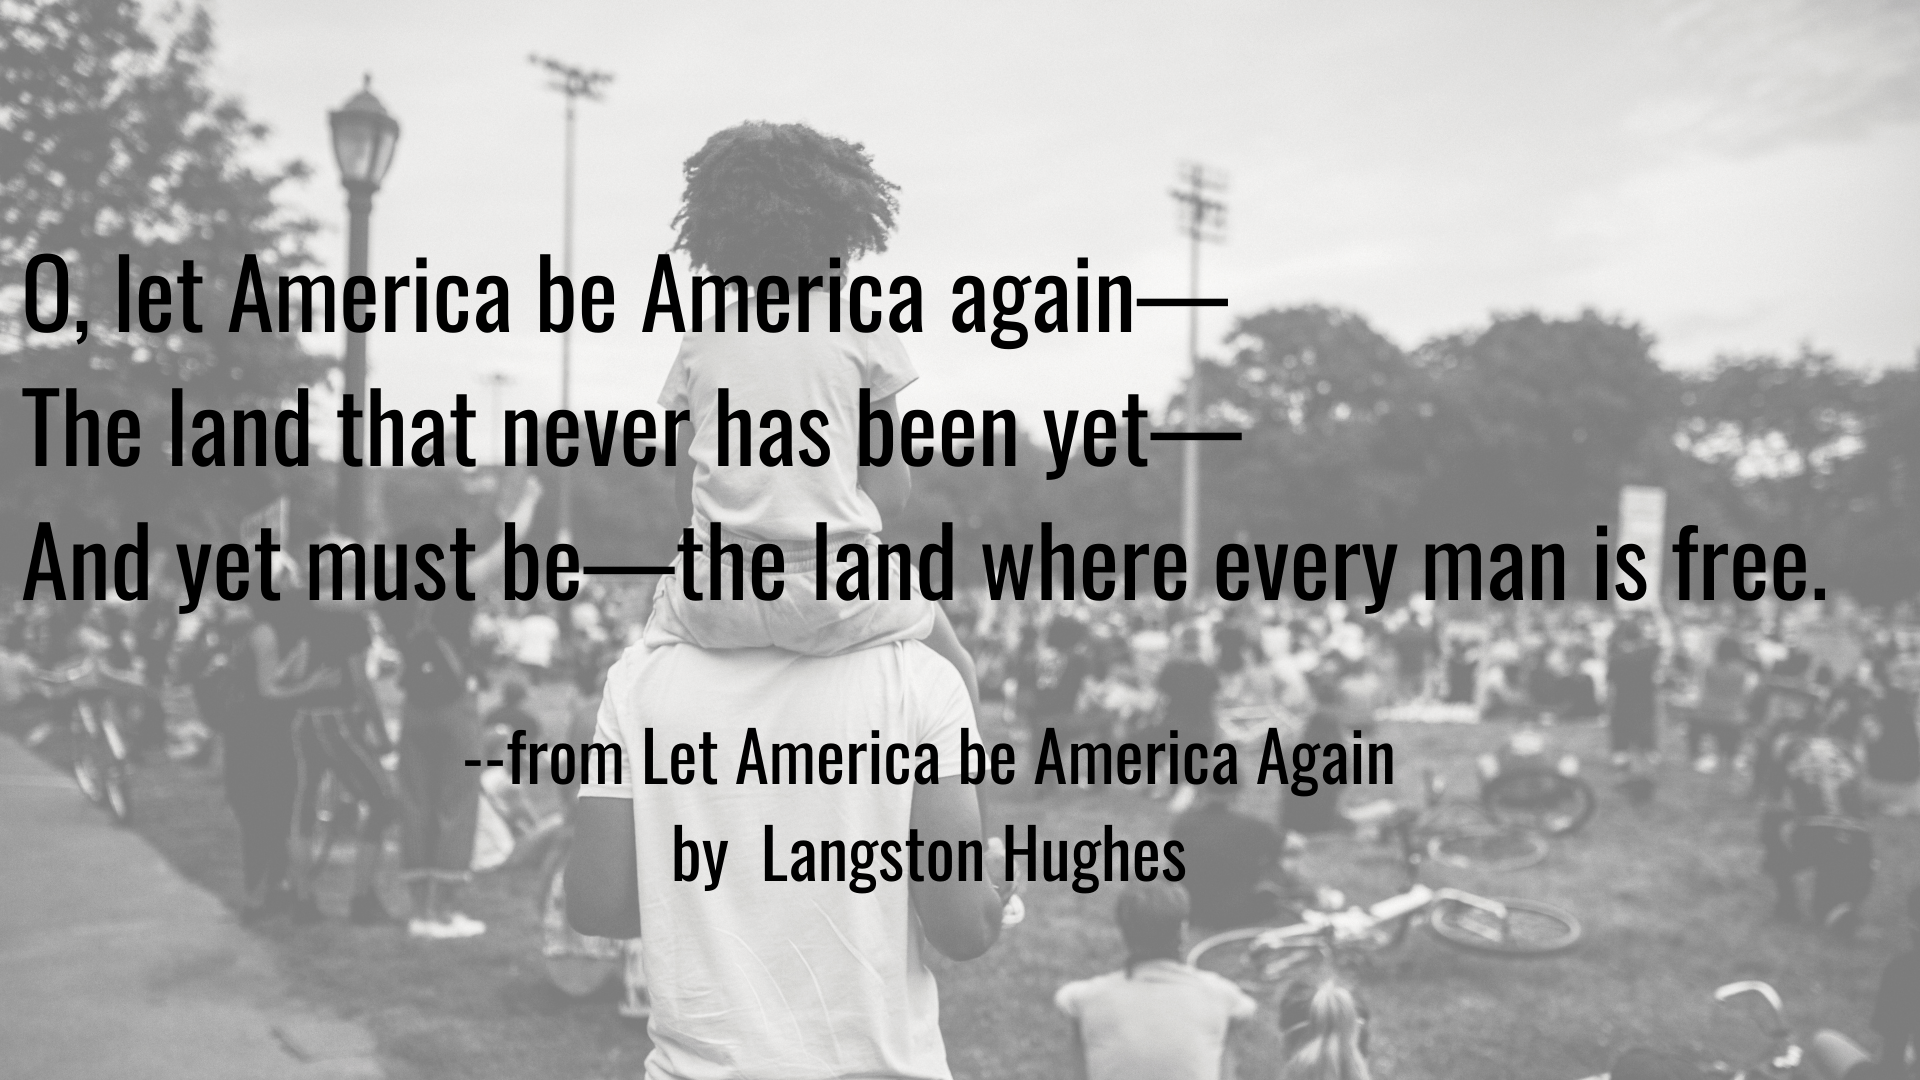 O, let America be America again— The land that never has been yet— And yet must be—the land where every man is free. Quote from Langston Hughes